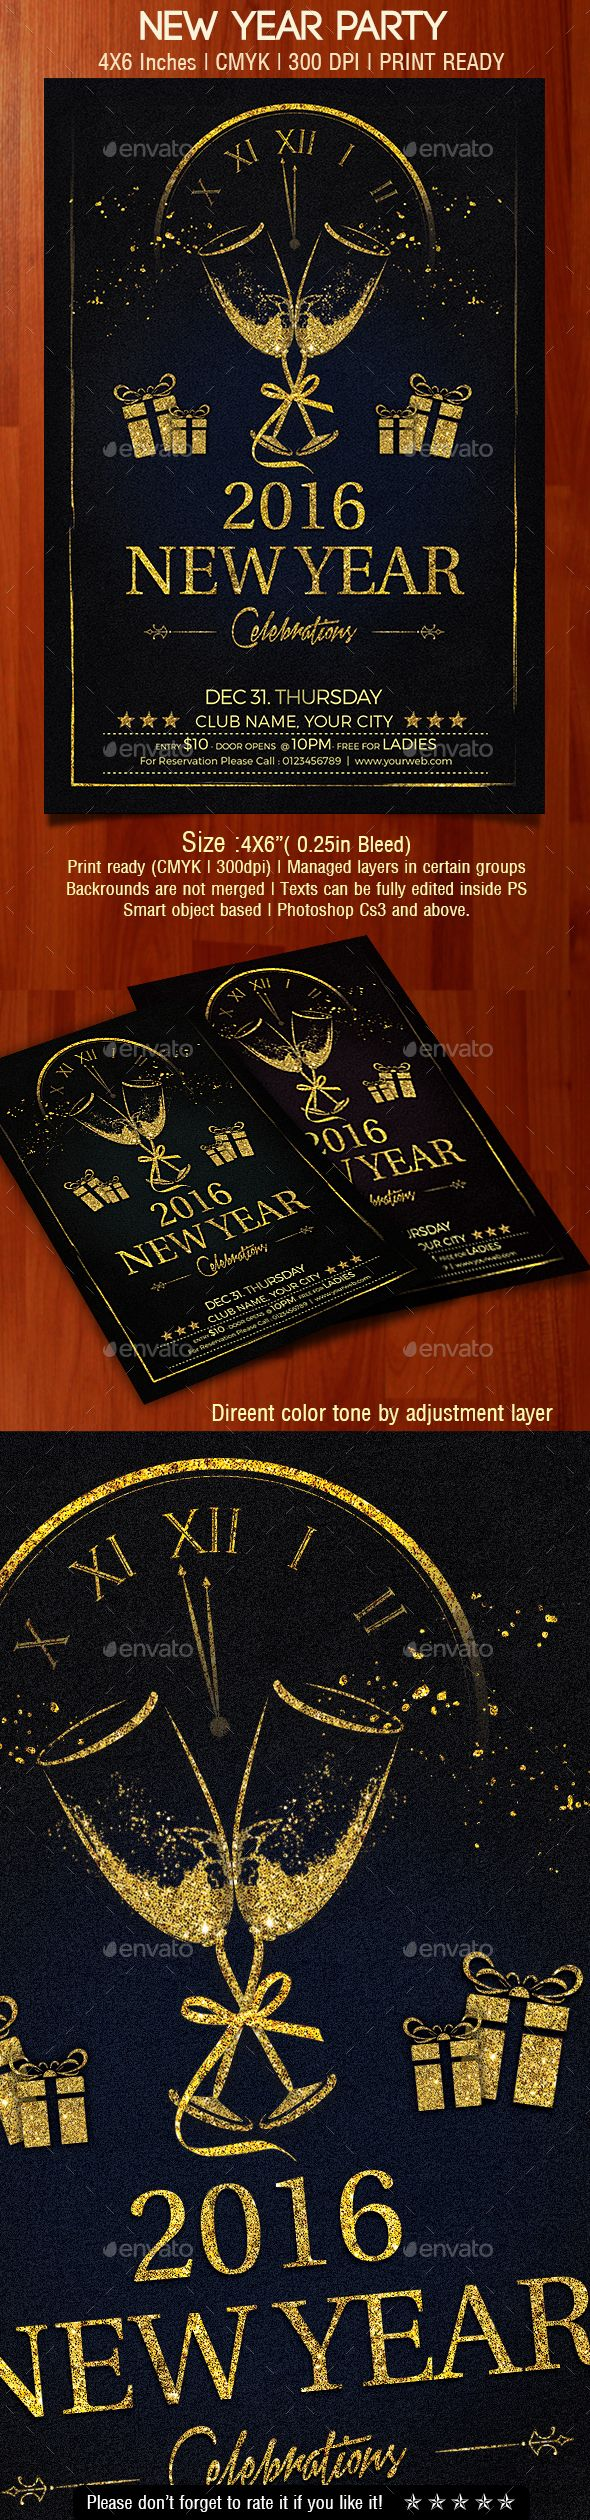 New Year 2016 Party Flyer Template PSD #design Download: http://graphicriver.net/item/new-year-party-flyer/13888453?ref=ksioks